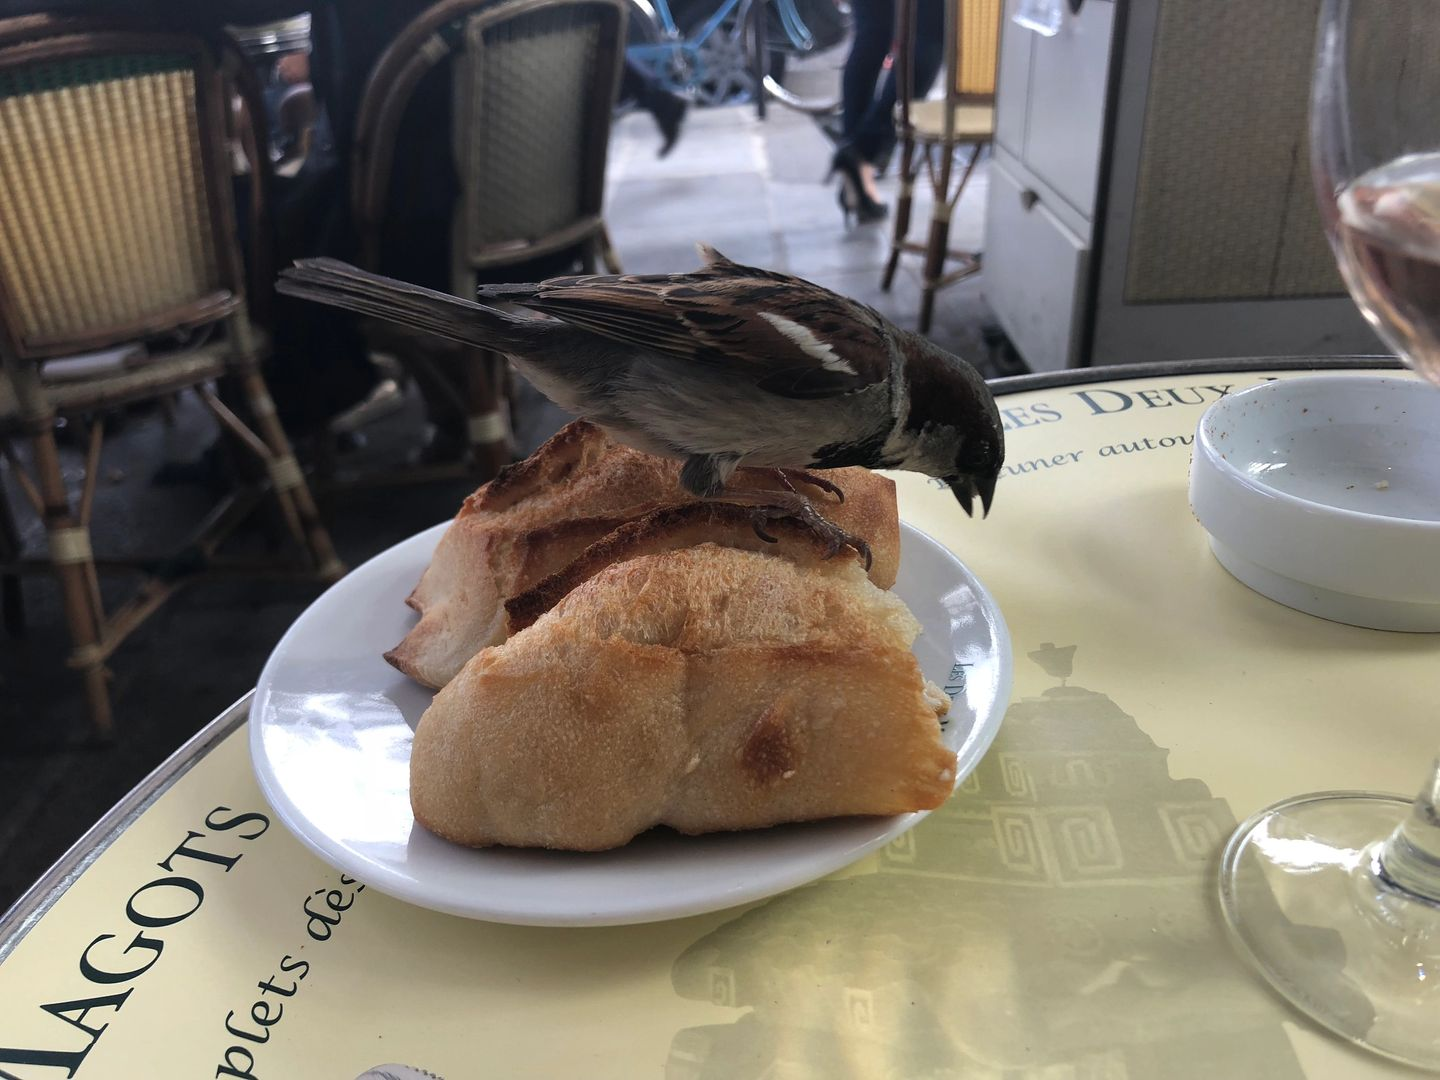 Bad-ass Parisian sparrow totally attacked my table, ate my bread